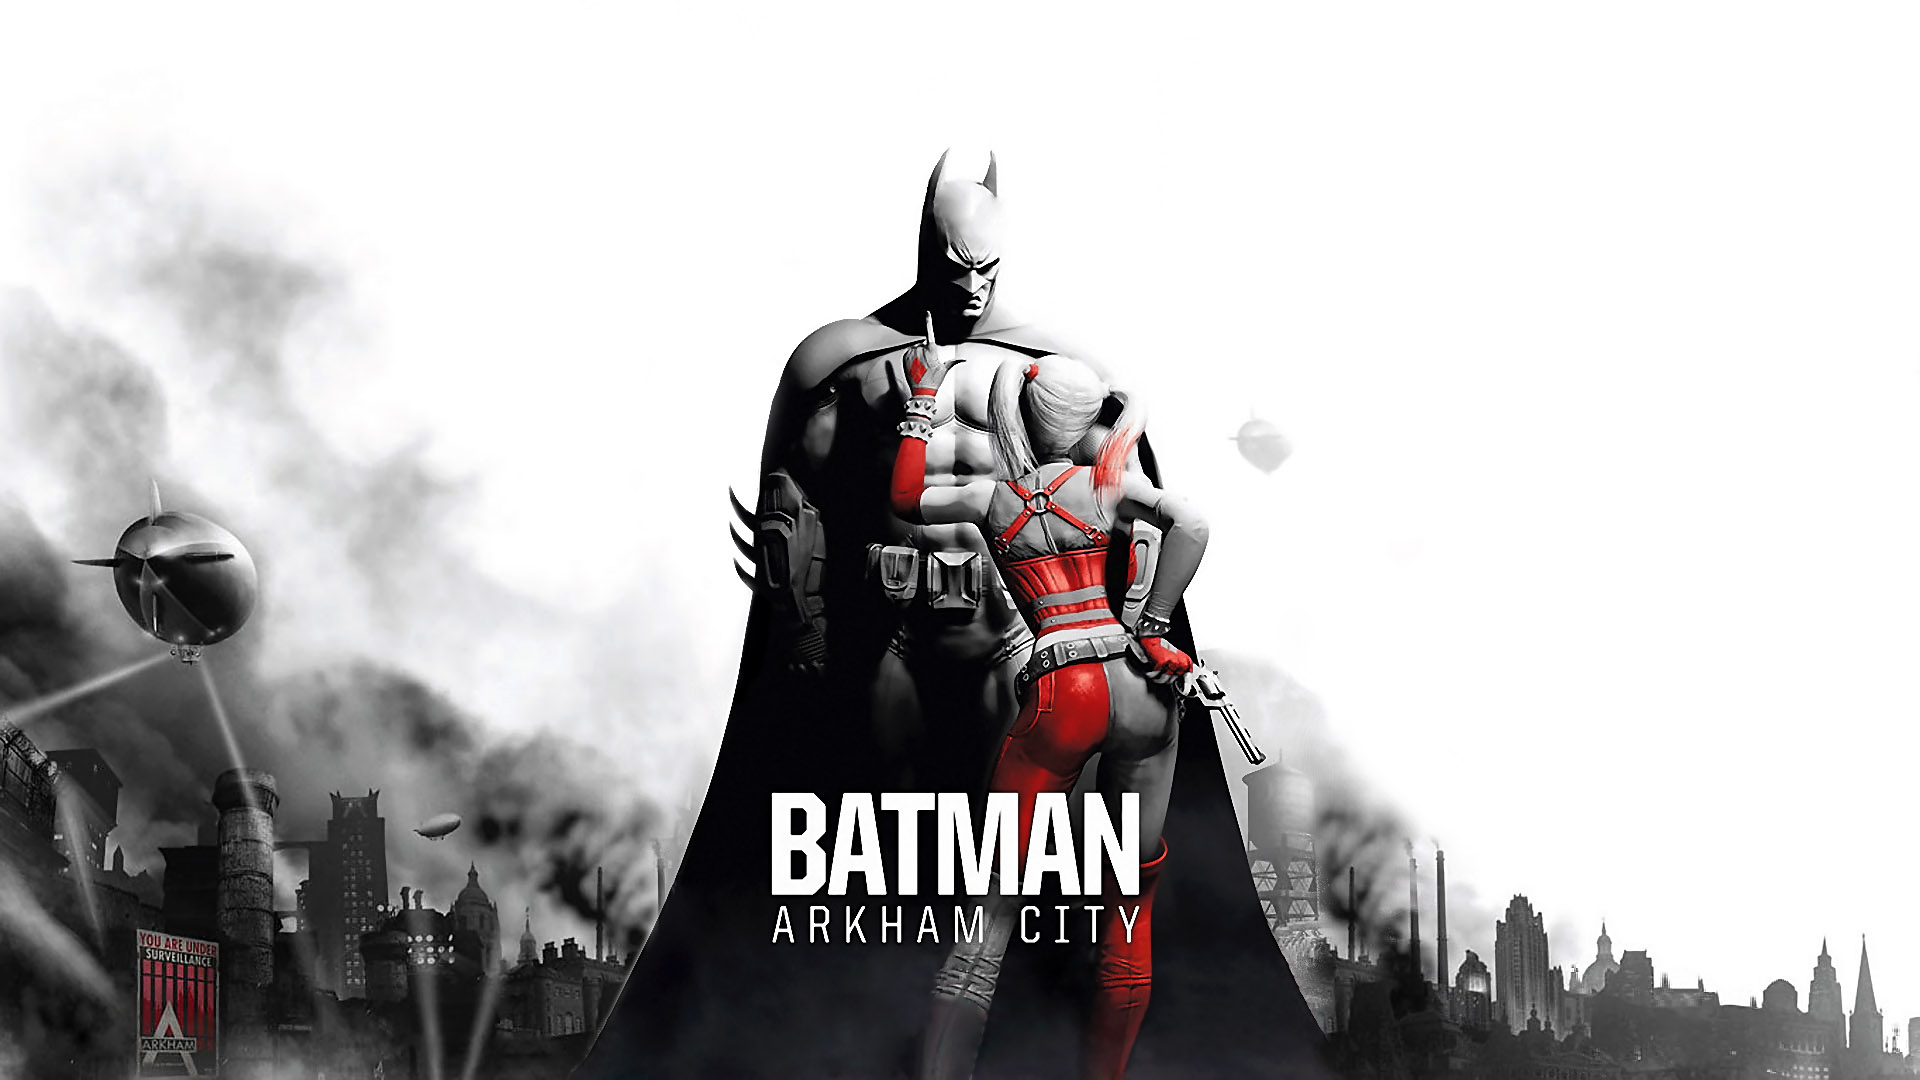 Batman-Arkham_City_Batman-Harley.jpg